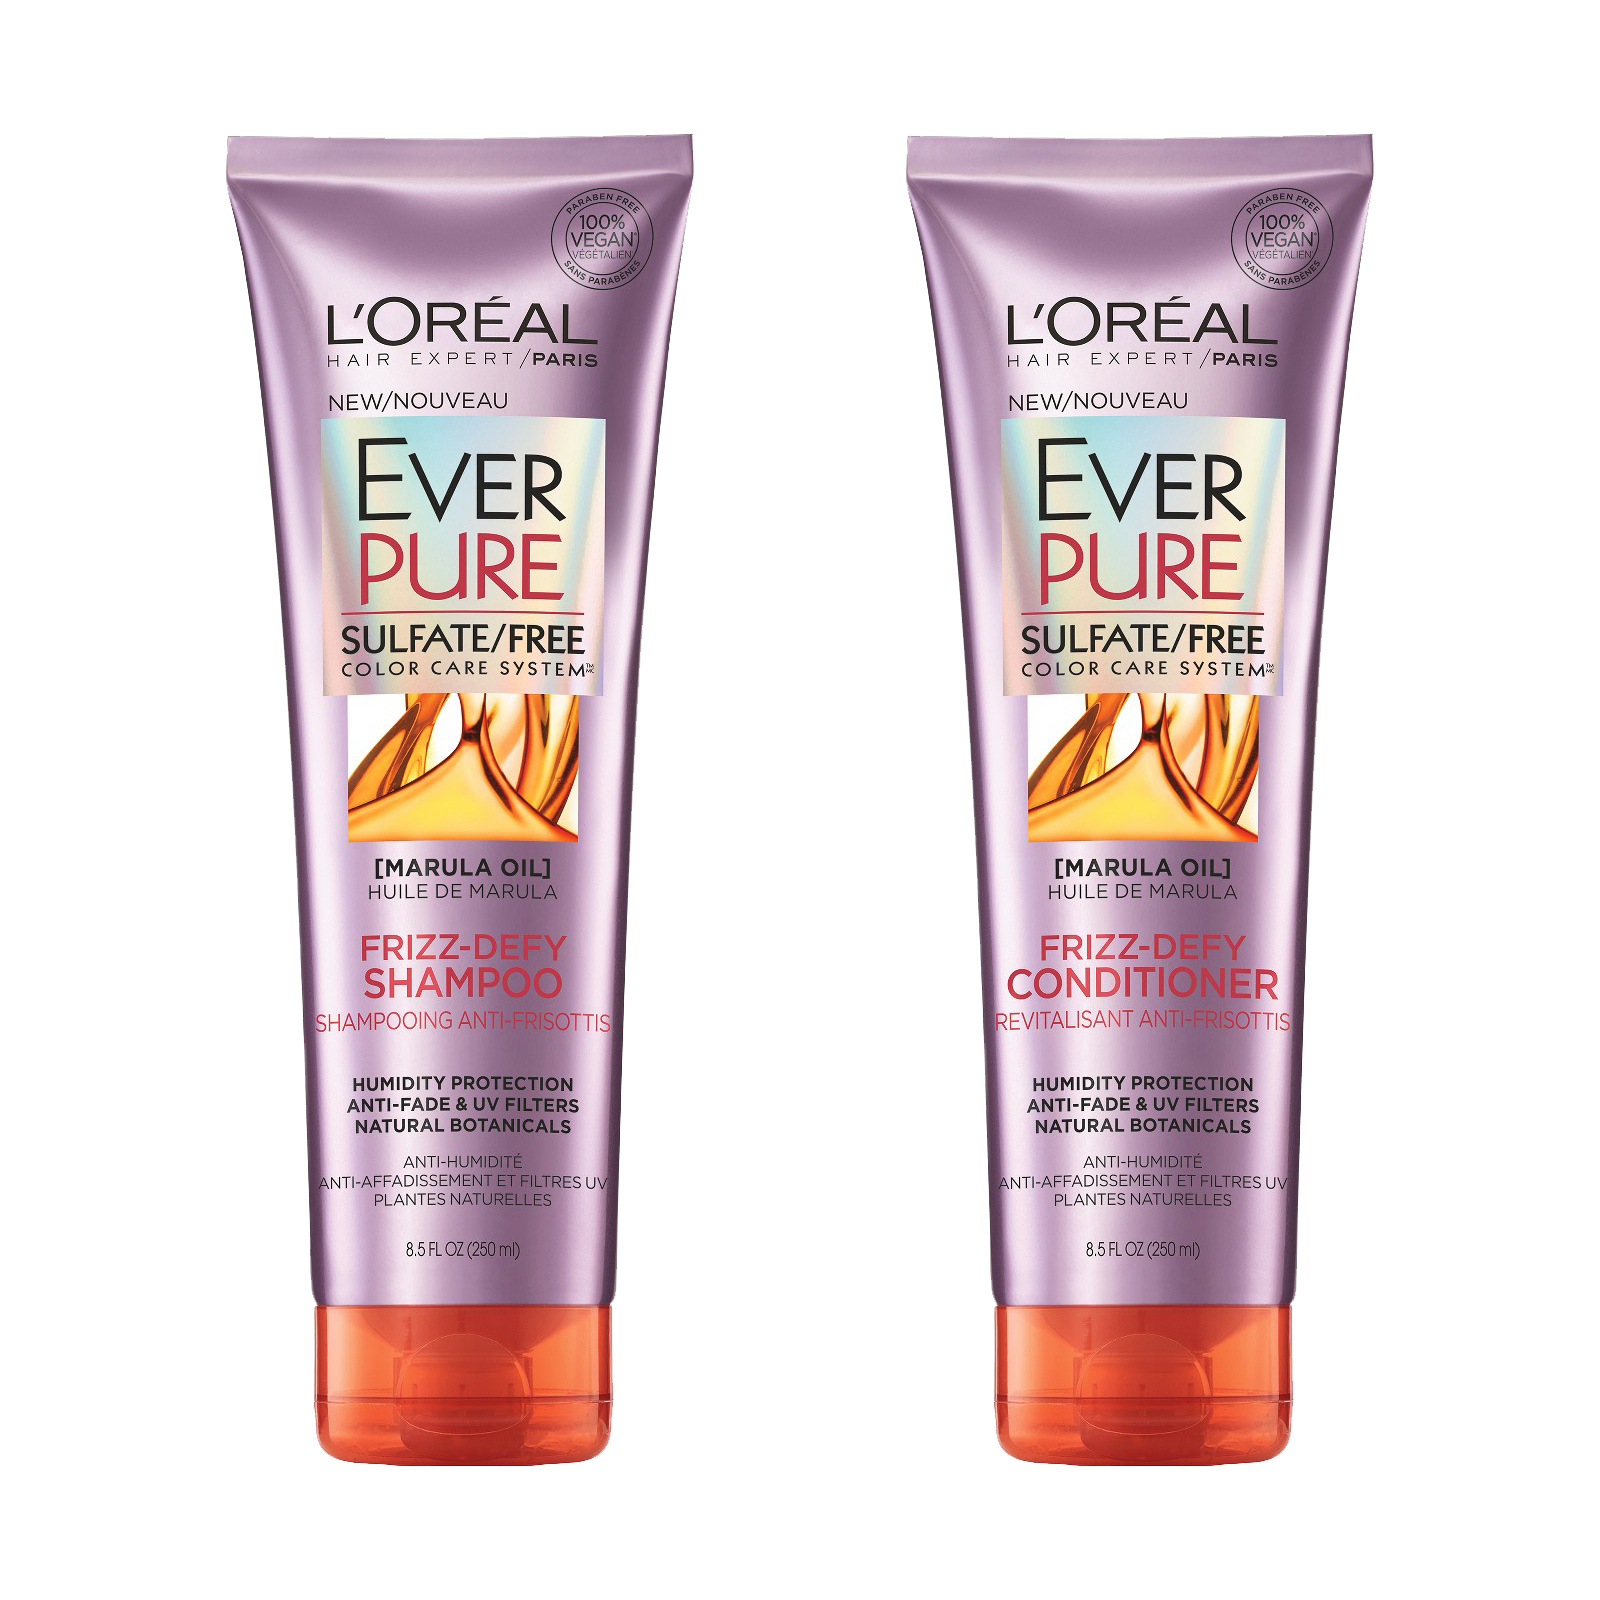 L'Oreal Paris EverPure Sulfate-Free Frizz-Defy Shampoo and Conditioner